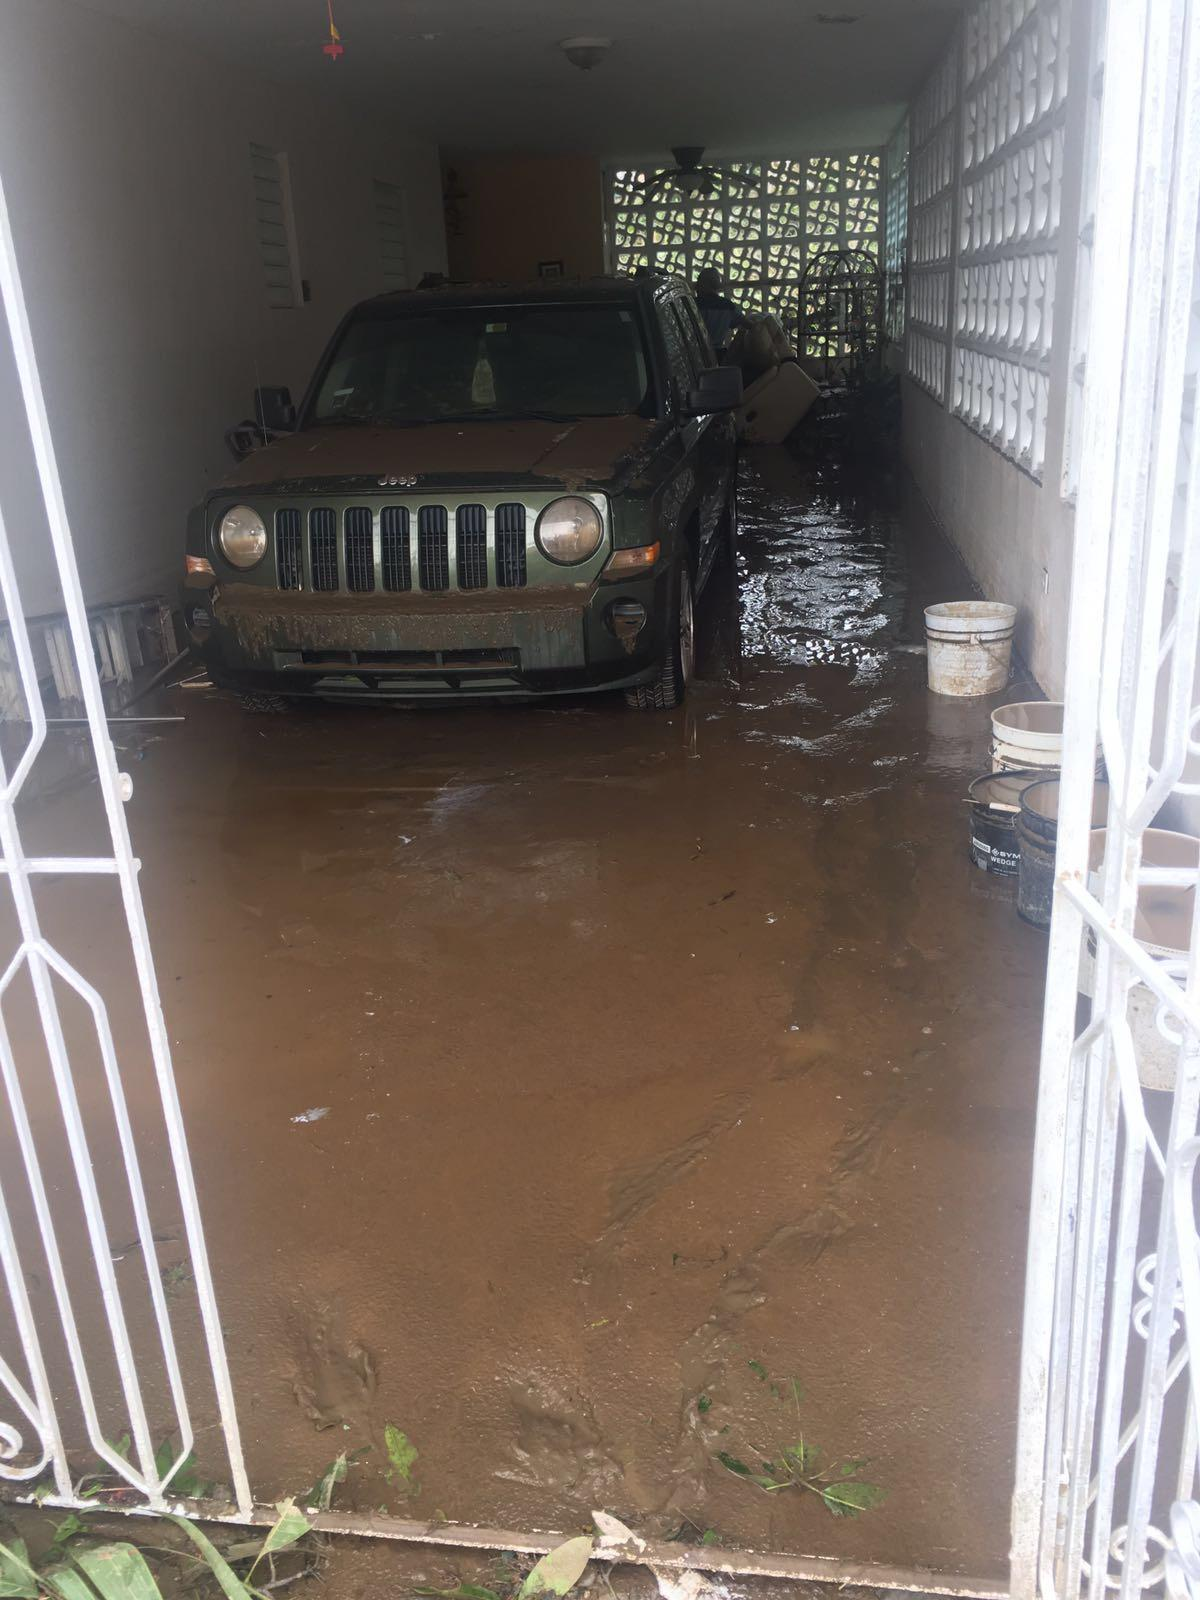 Resident+of+Toa+Baja%2C+Puerto+Rico%2C+Pedro+Col%C3%B3n+Figueroa%27s+truck+is+parked+in+a+flooded+garage.+%0A%28Photo+courtesy+of+Pedro+Col%C3%B3n+Figueroa%29%0A